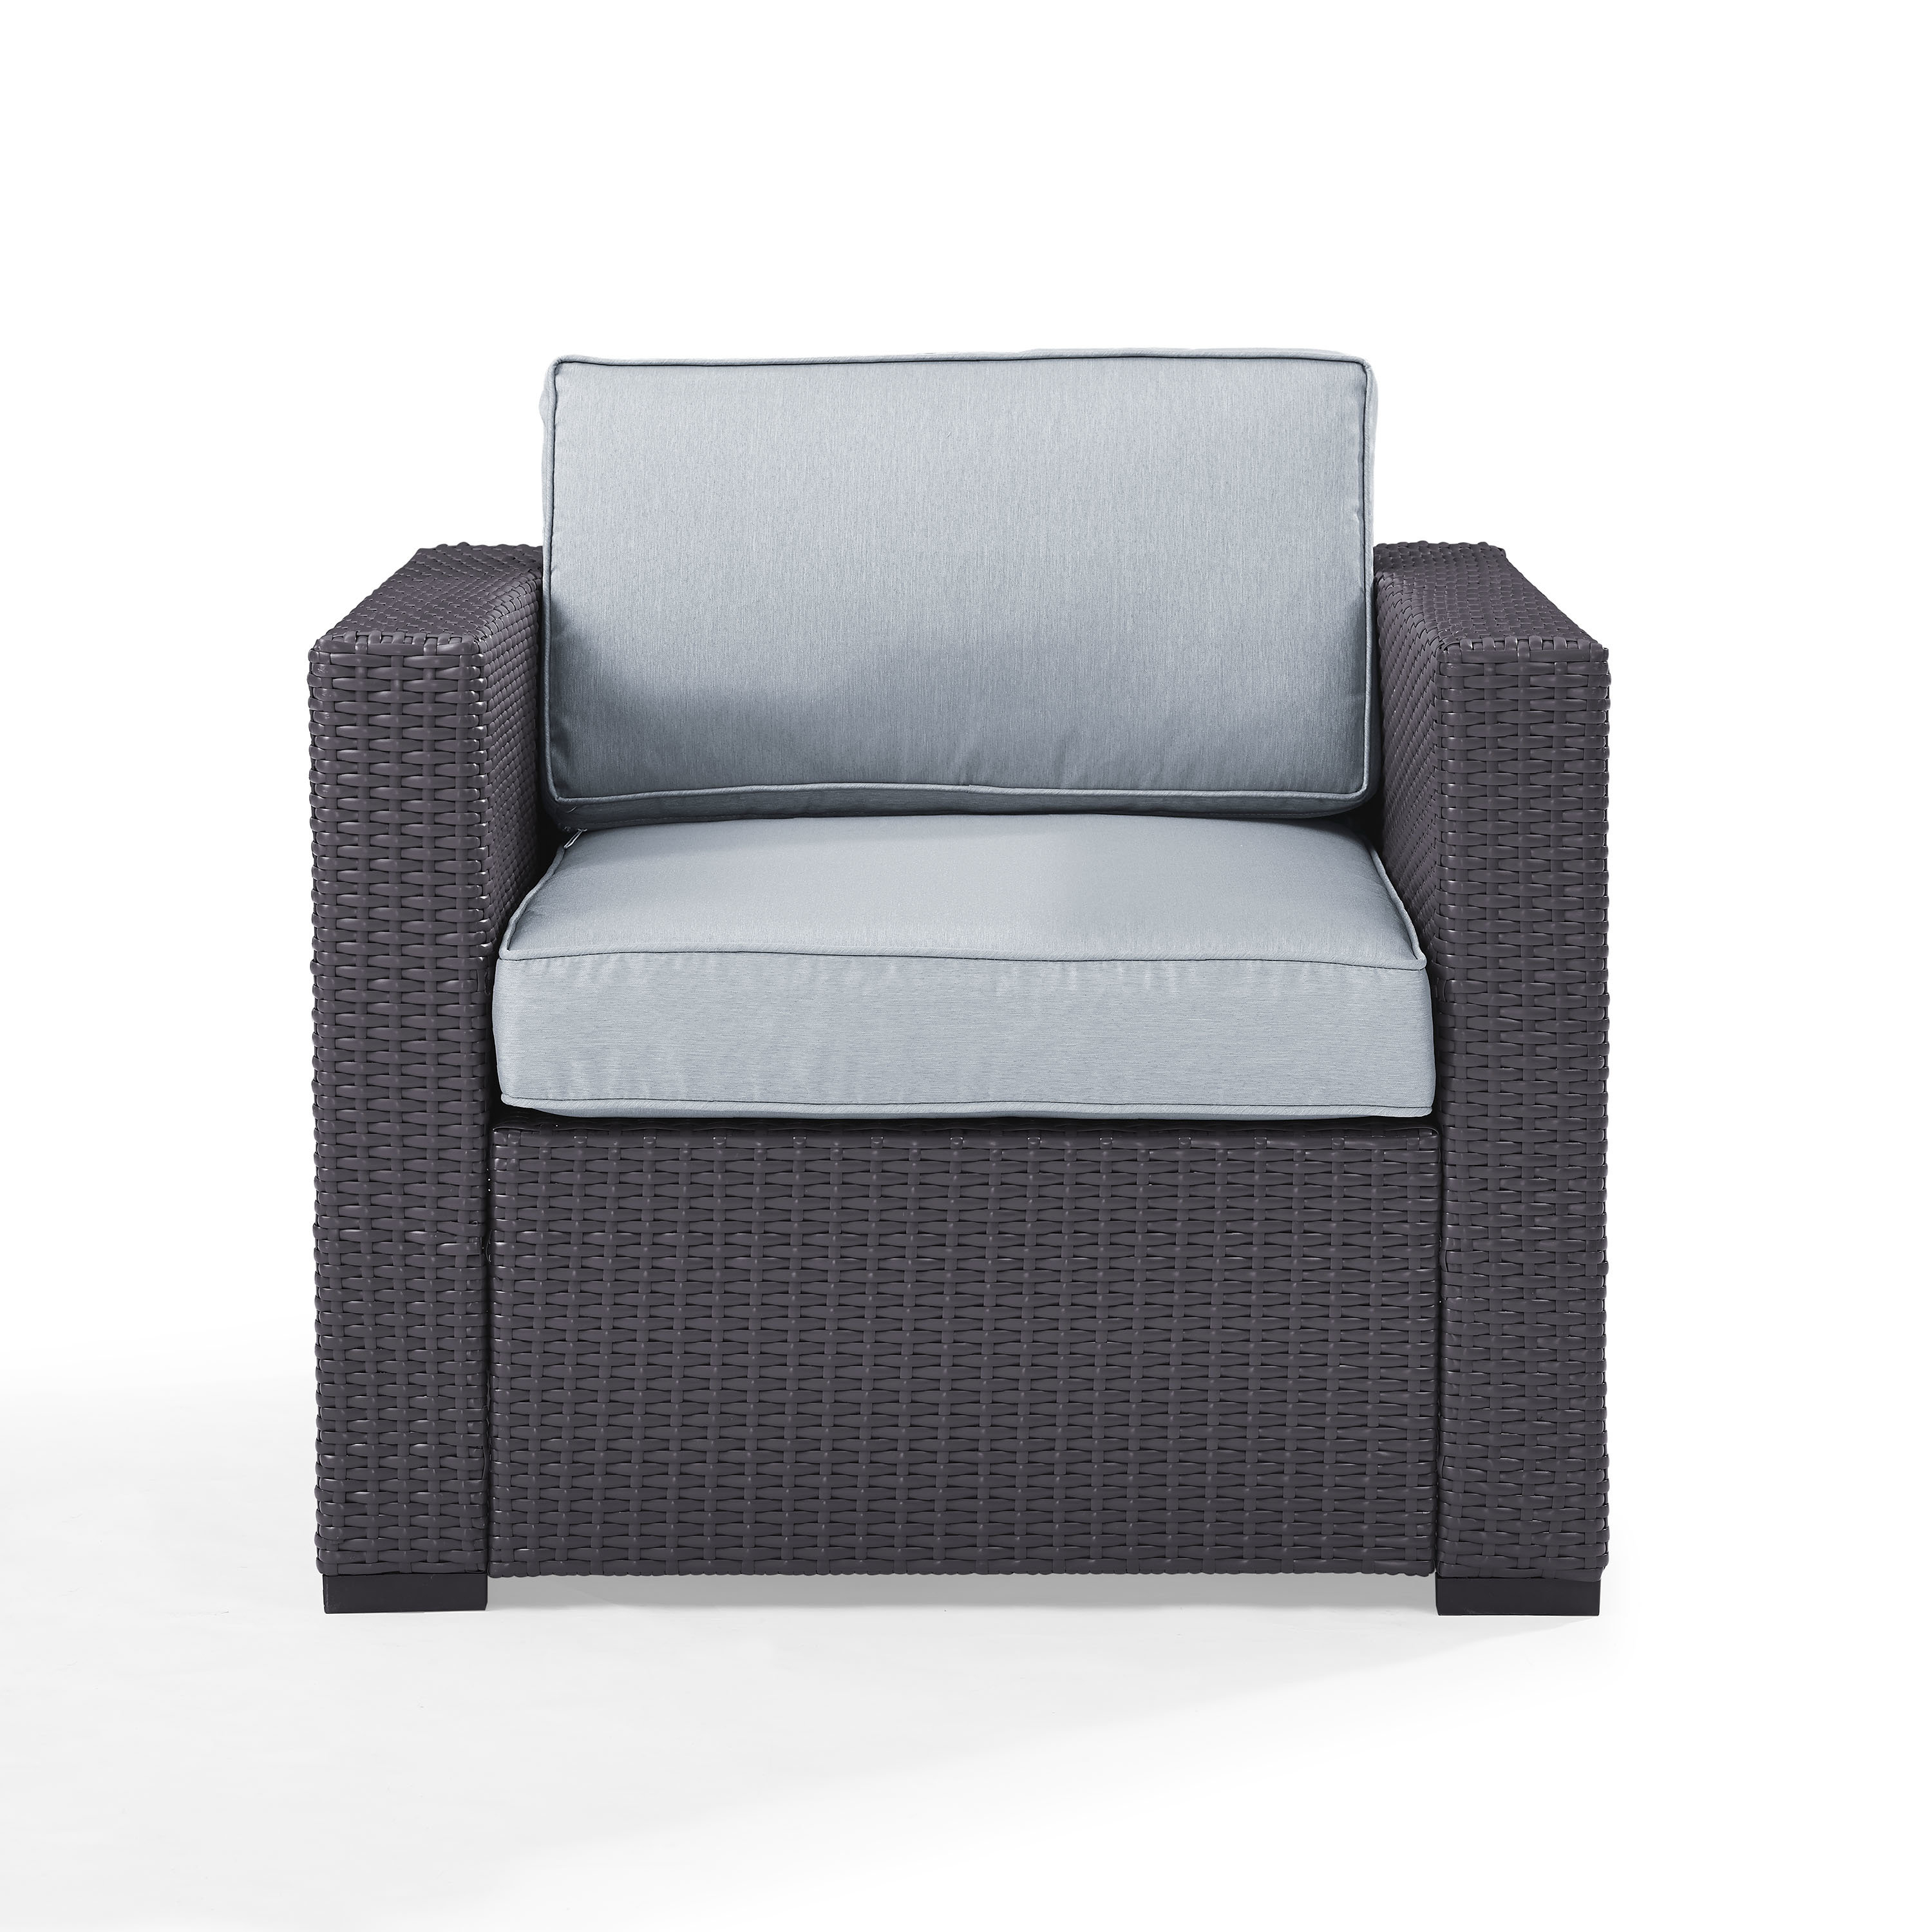 Keiran Daybeds With Cushions Intended For 2019 Seaton Patio Chair With Cushions (View 10 of 20)